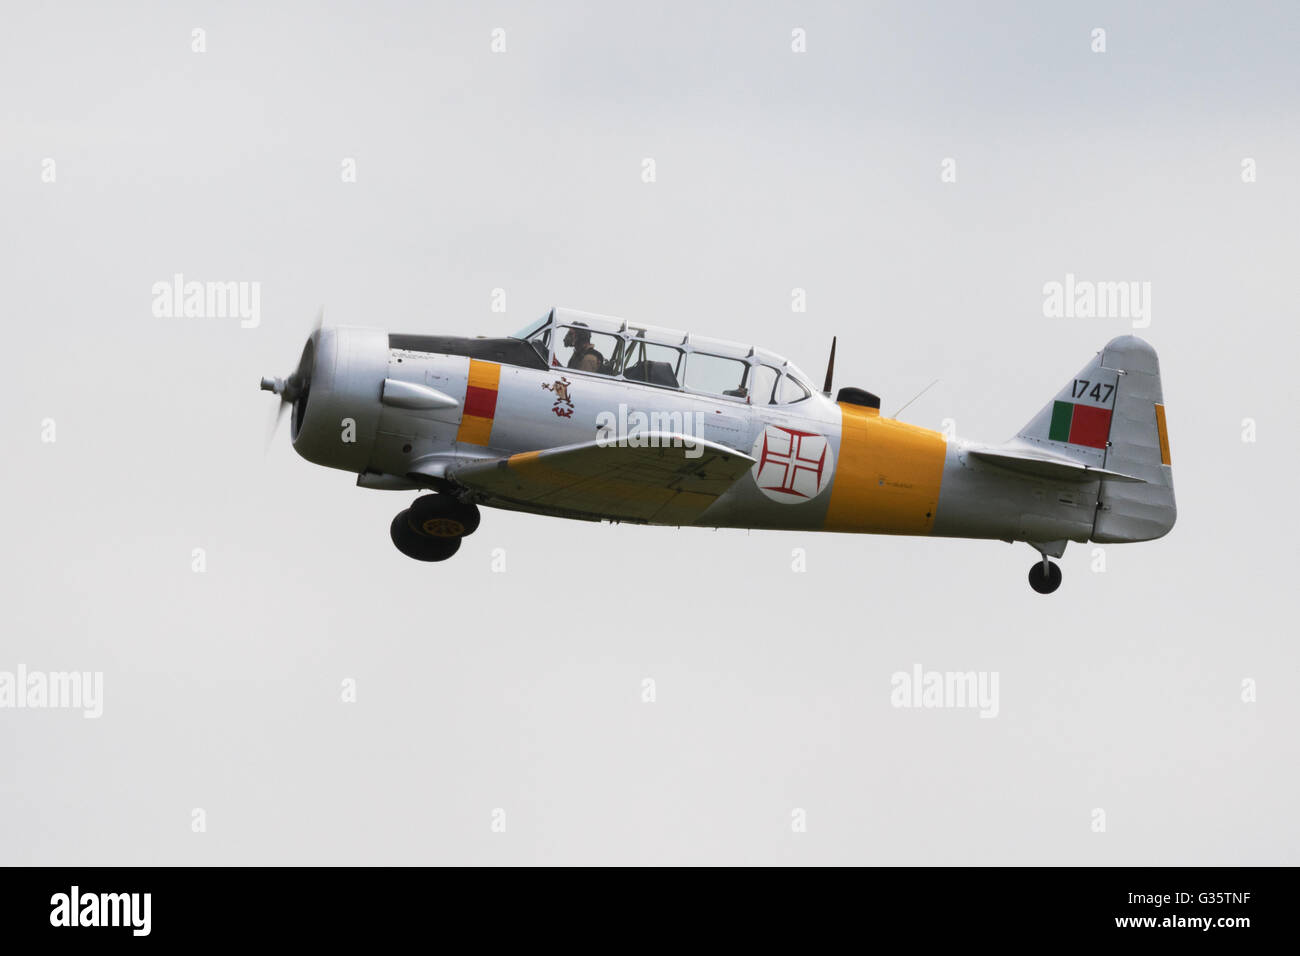 North American Harvard plane in flight, Duxford Imperial War Museum Airport, Cambridge UK - Stock Image